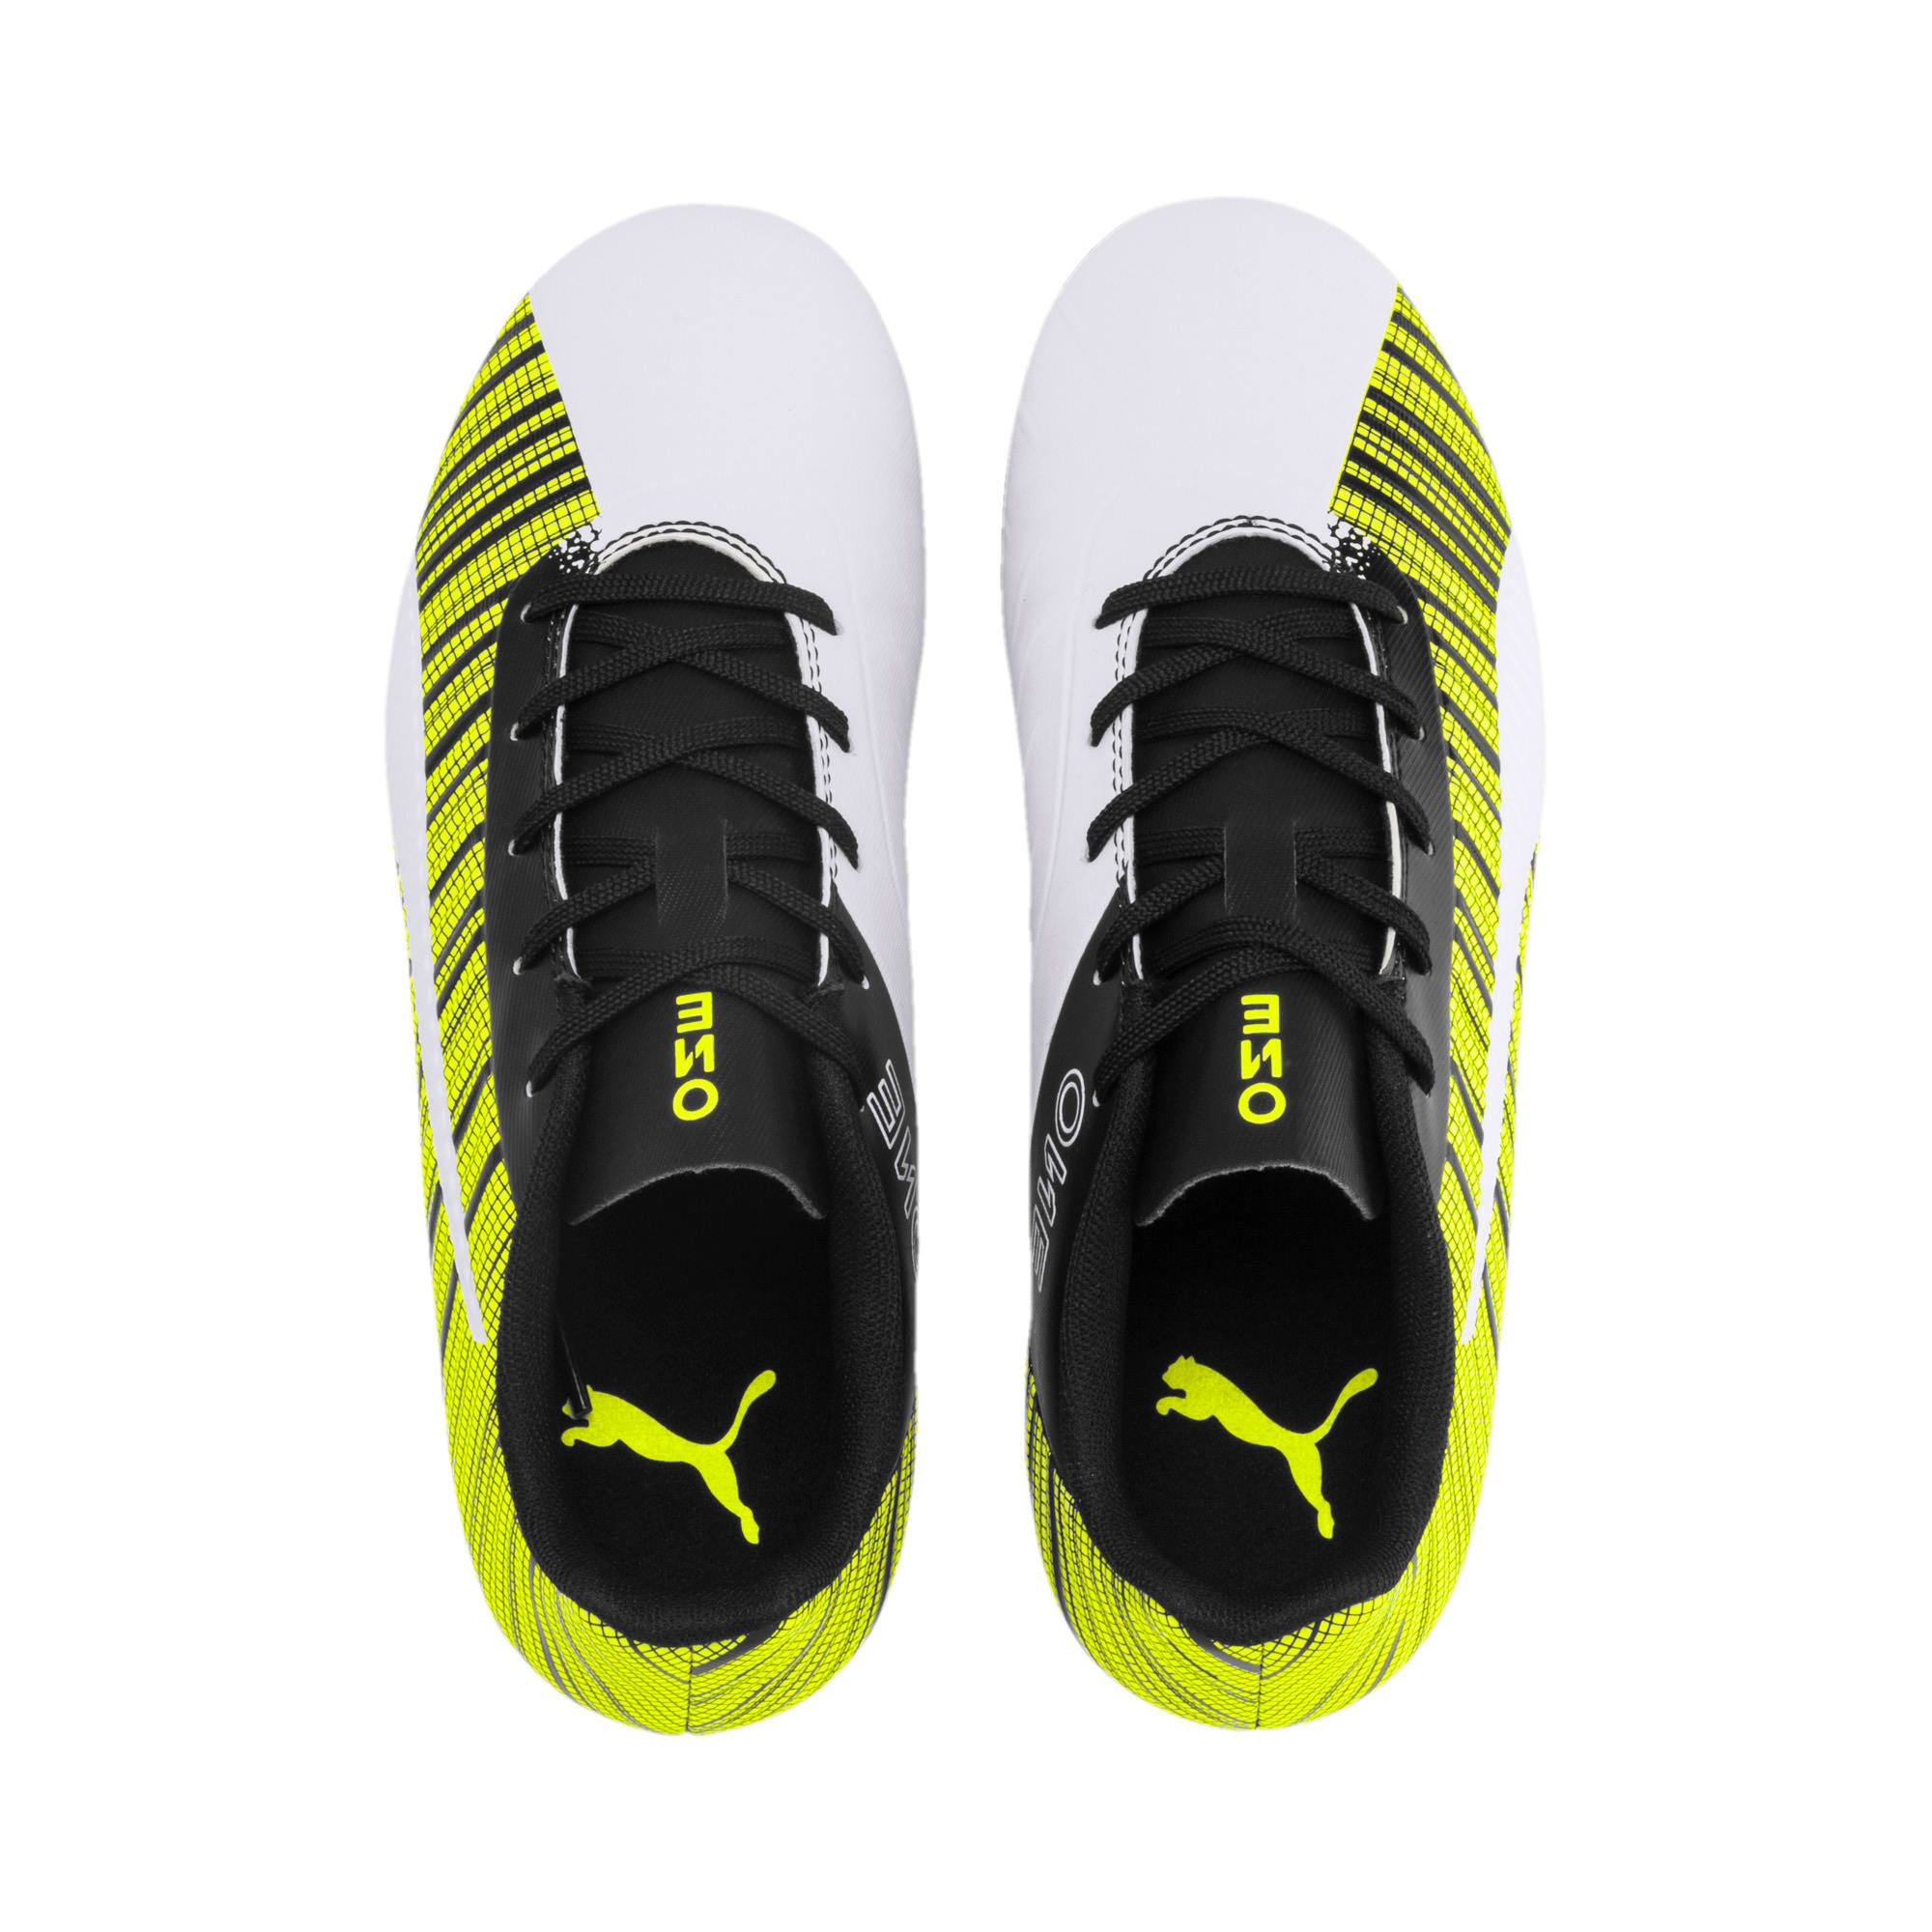 Thumbnail 6 of PUMA ONE 5.4 FG/AG Youth Fußballschuhe, White- Black-Yellow Alert, medium